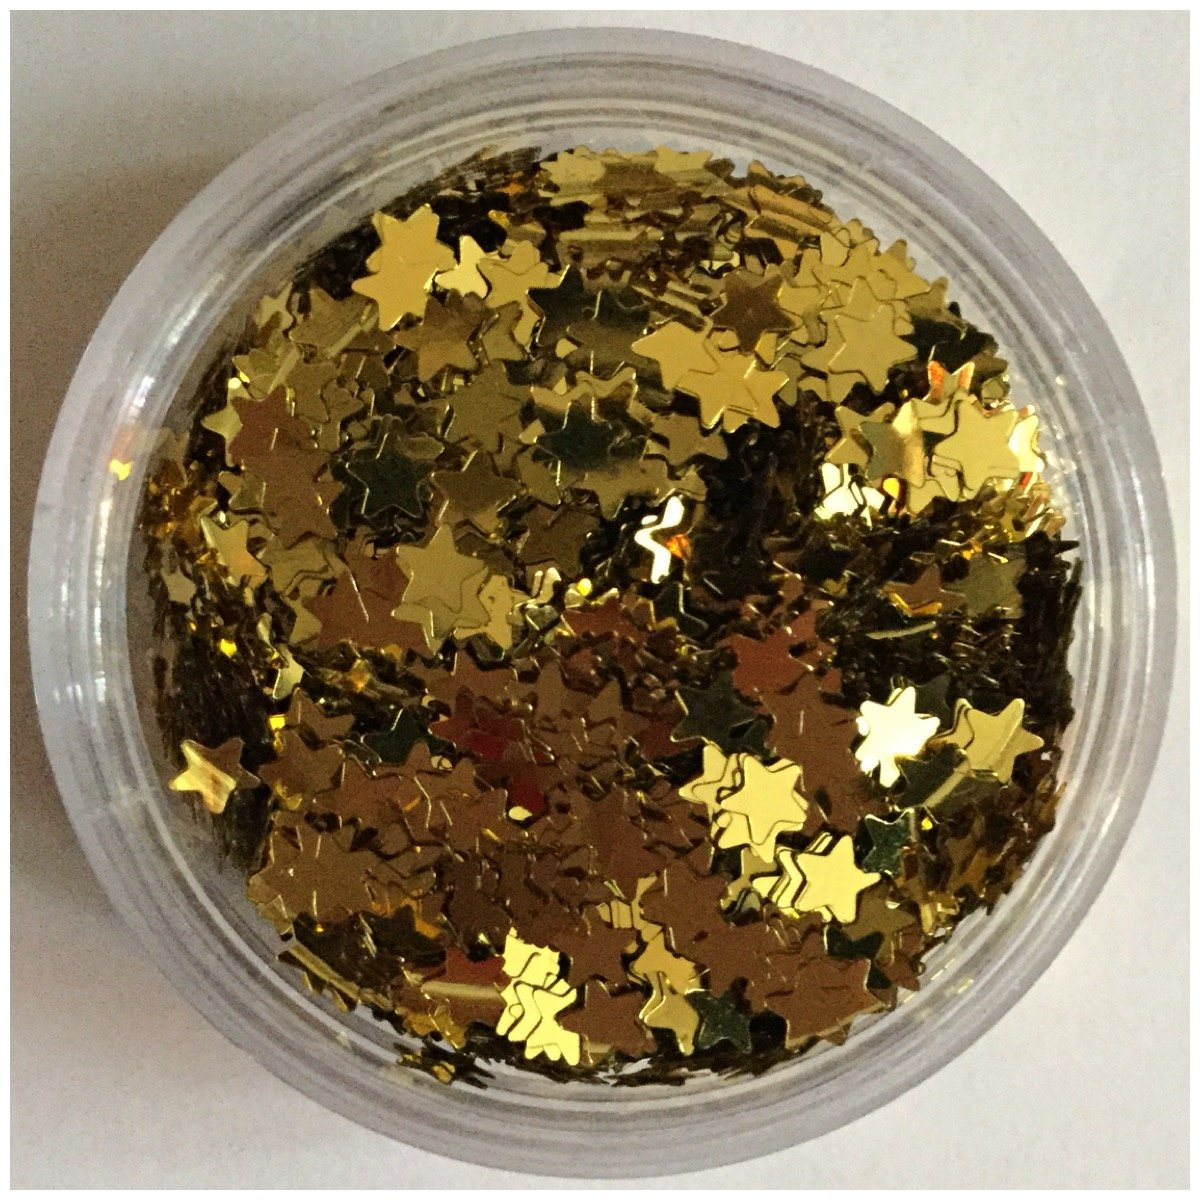 Loose Cosmetic Glitter Stars Holographic Silver, Silver, Gold for face, body, hair, nail and craft decoration (50g, Gold) Just4youonlineUK